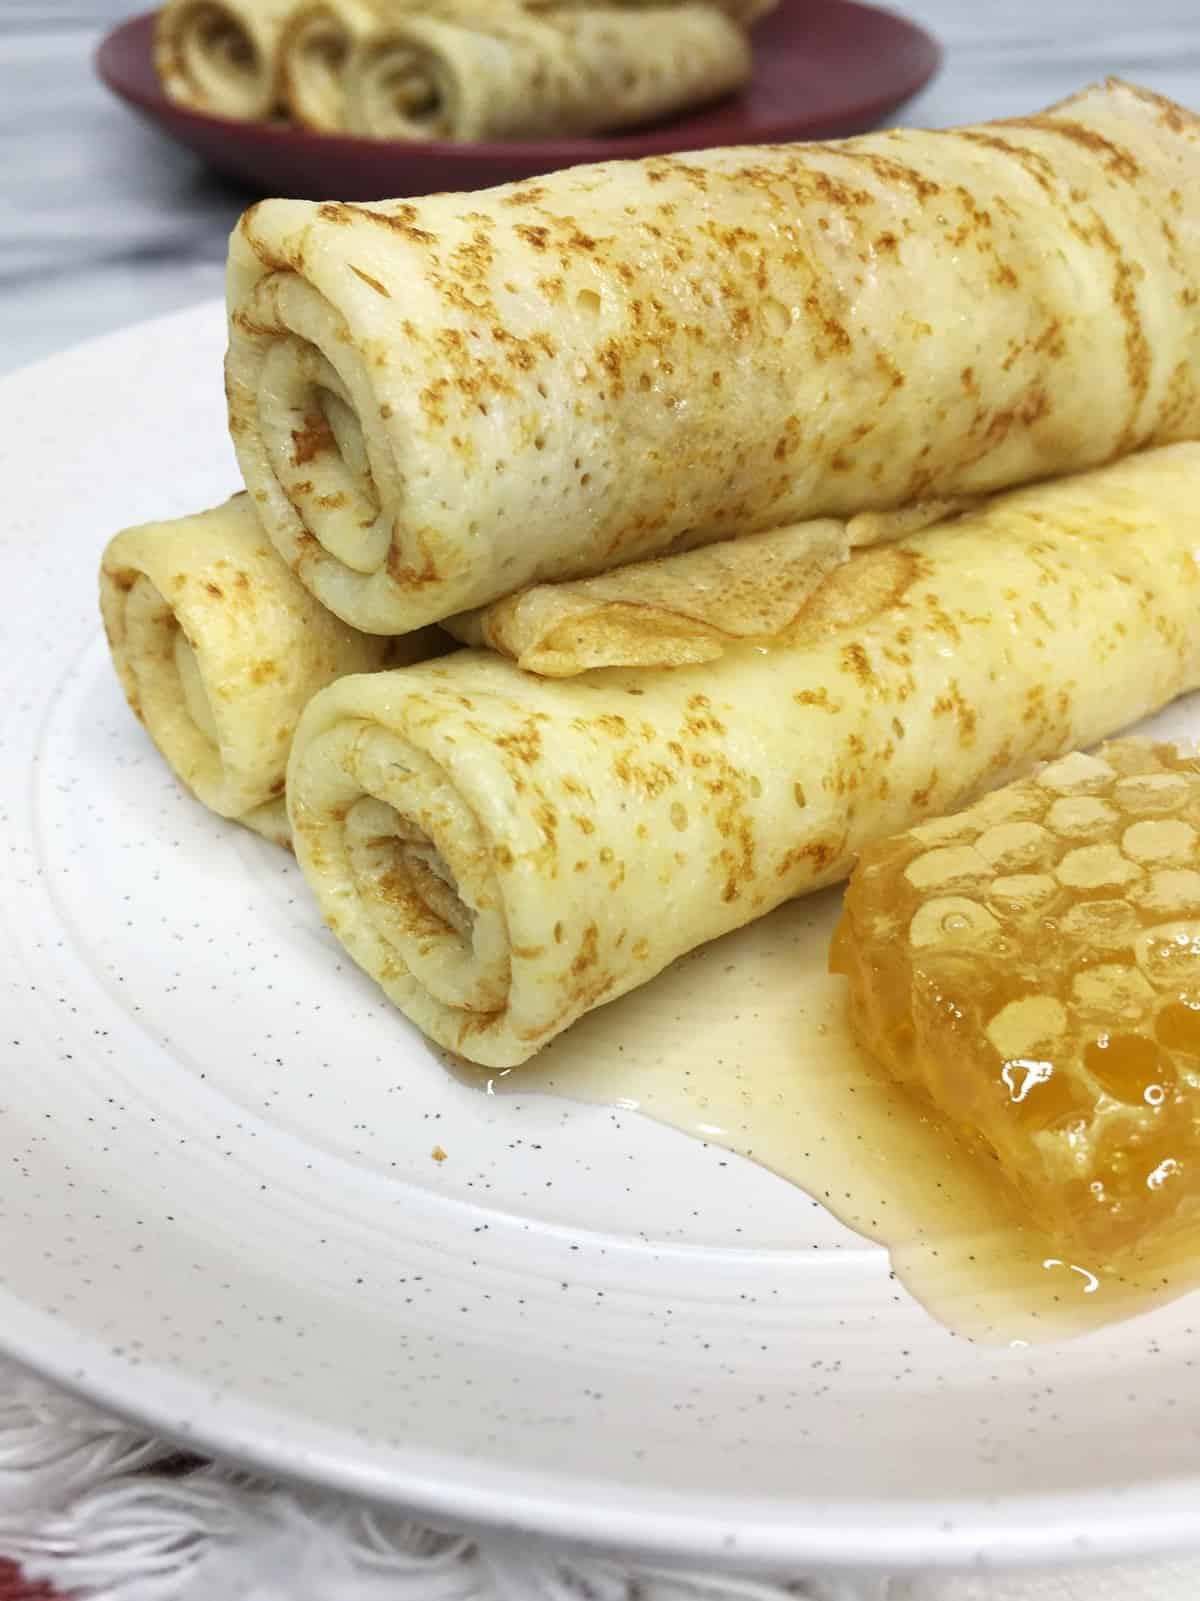 Three rolled crepes with honey aside on a plate